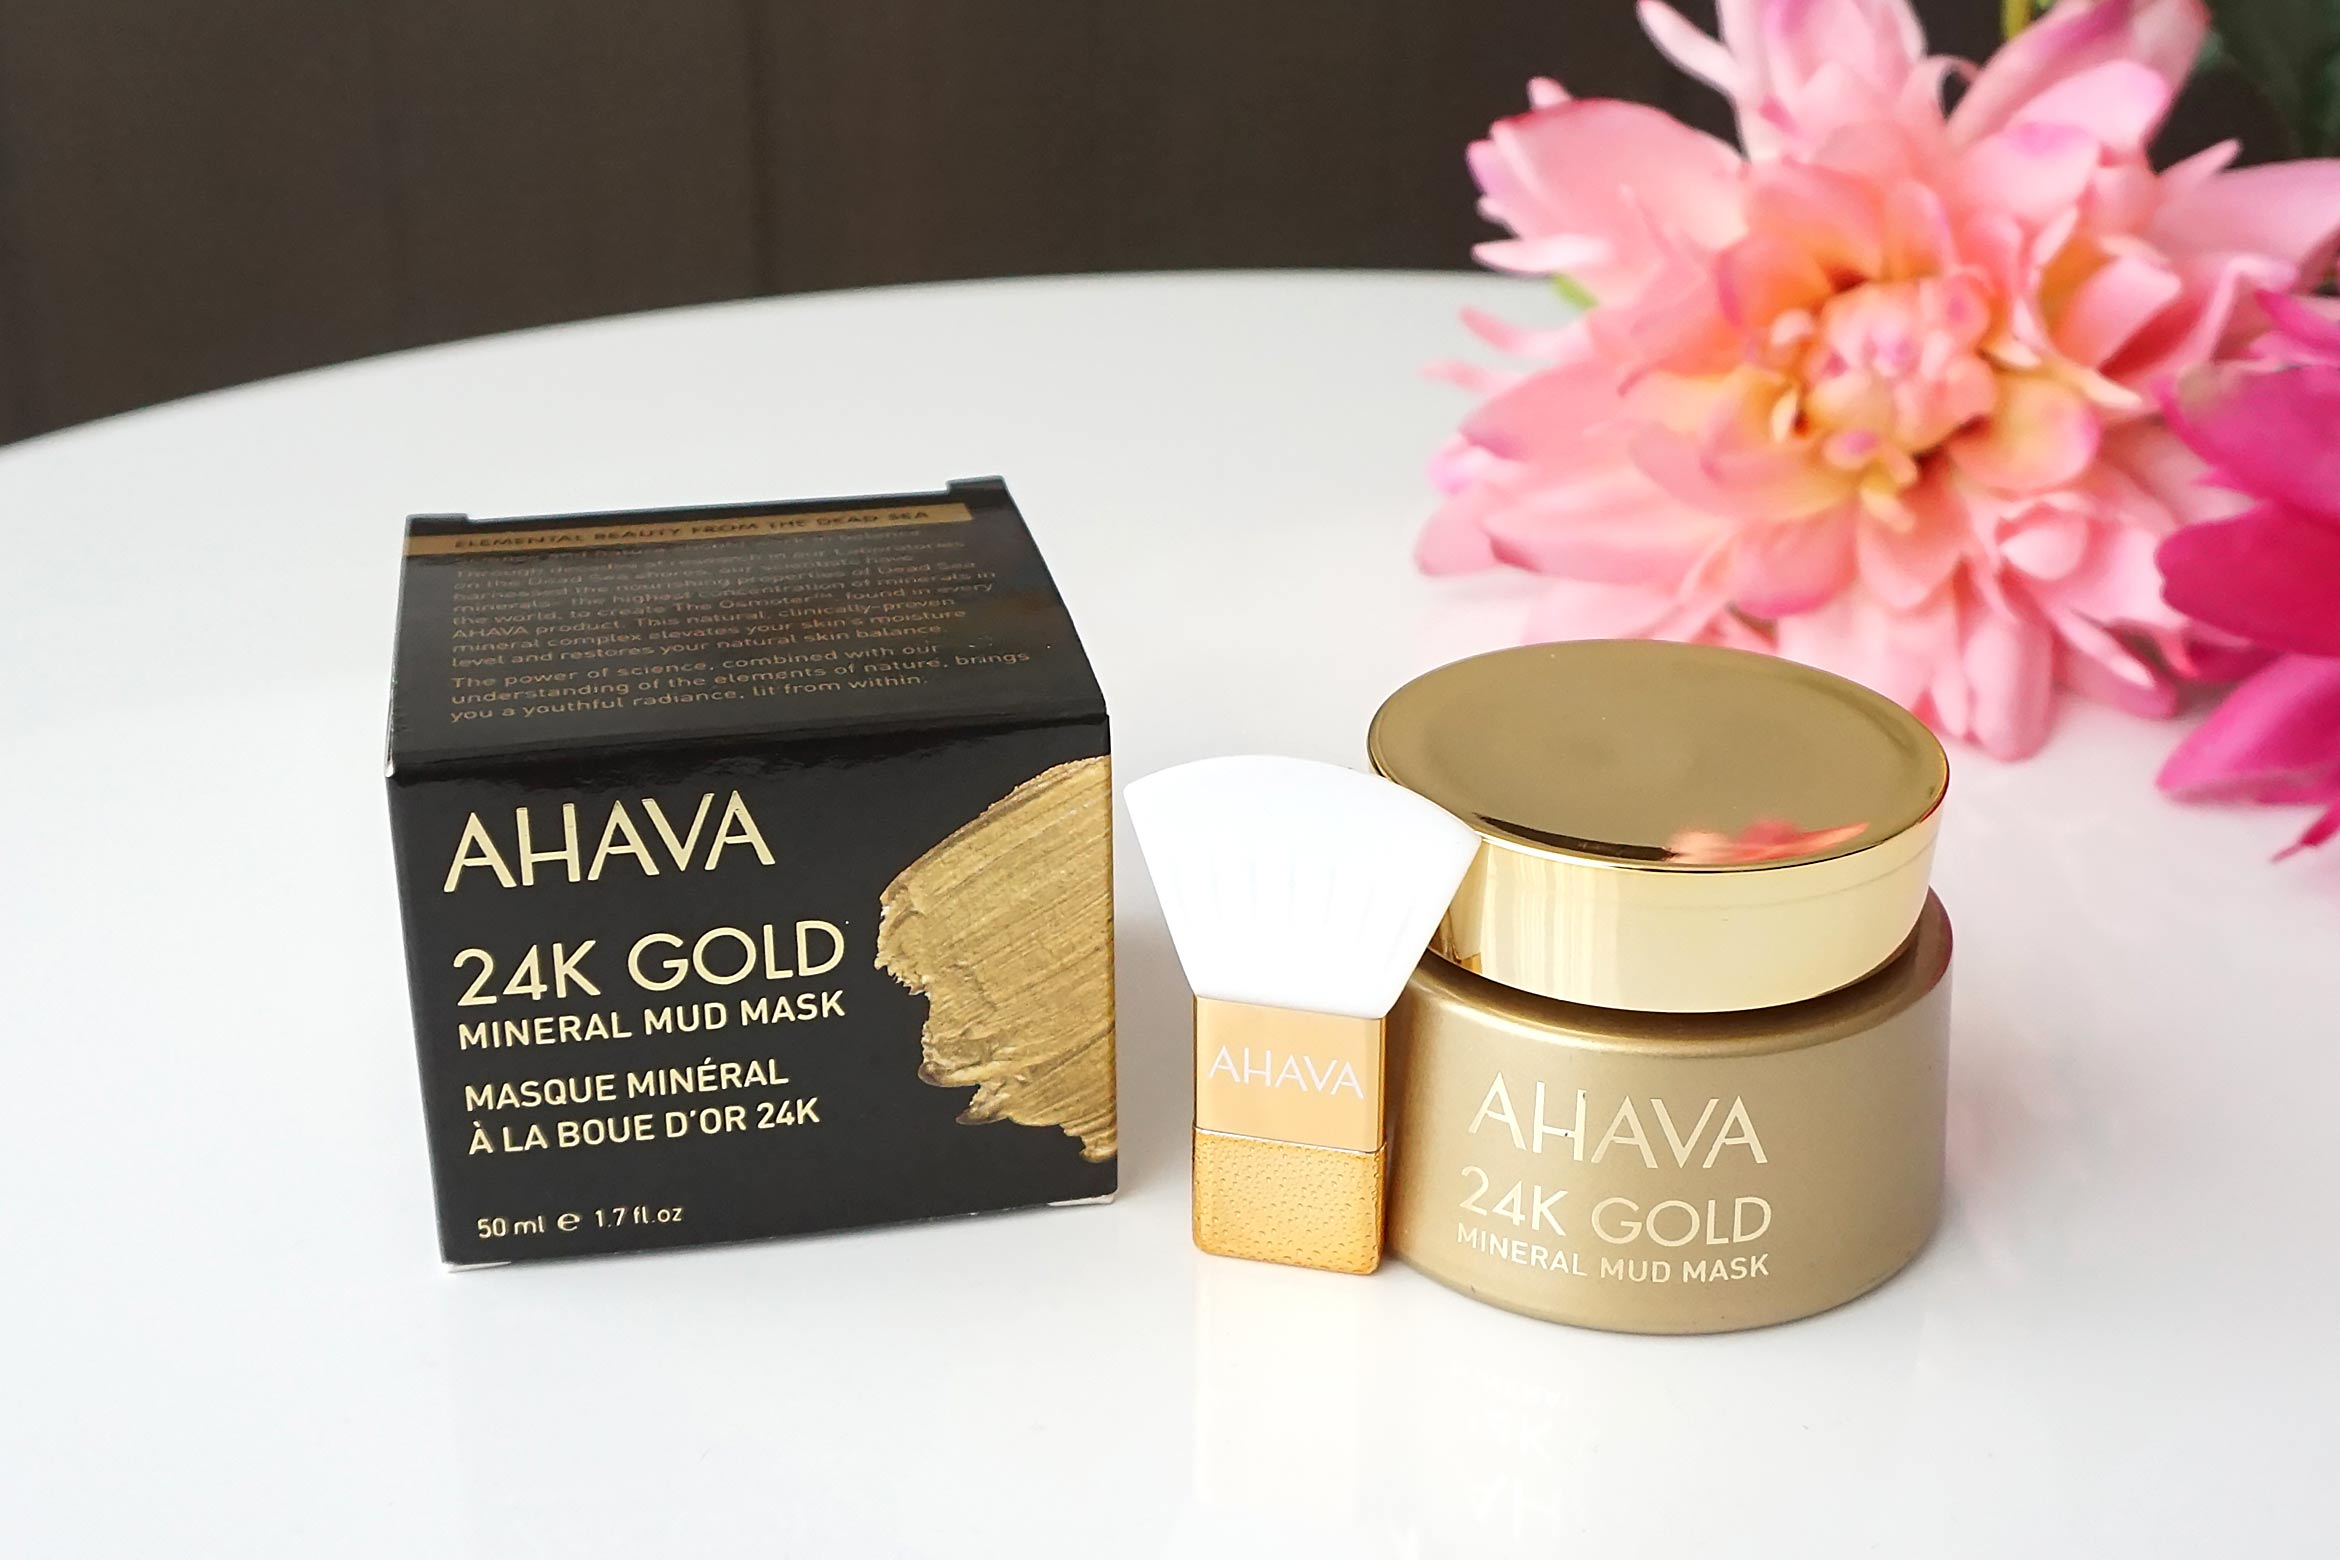 Ahava-24k-gold-mineral-mud-mask-review-4